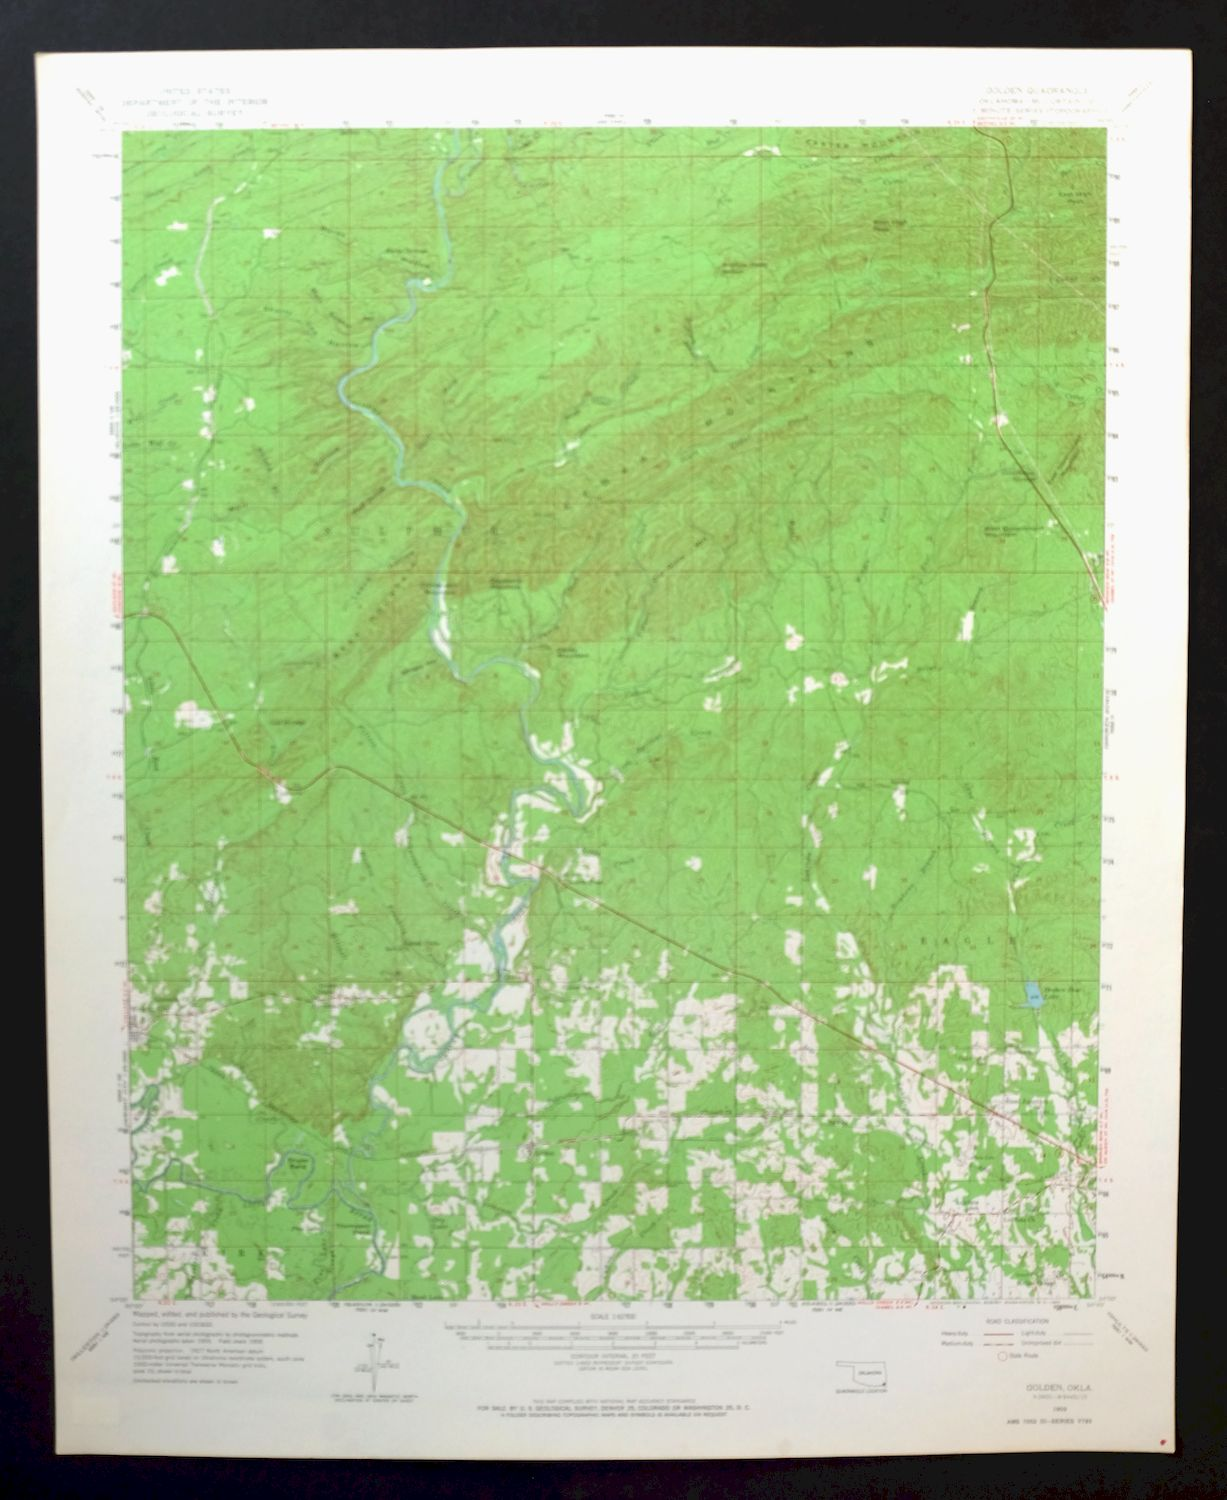 Details about Golden Oklahoma Vintage USGS Topo Map 1959 Wright City  15-minute Topographical